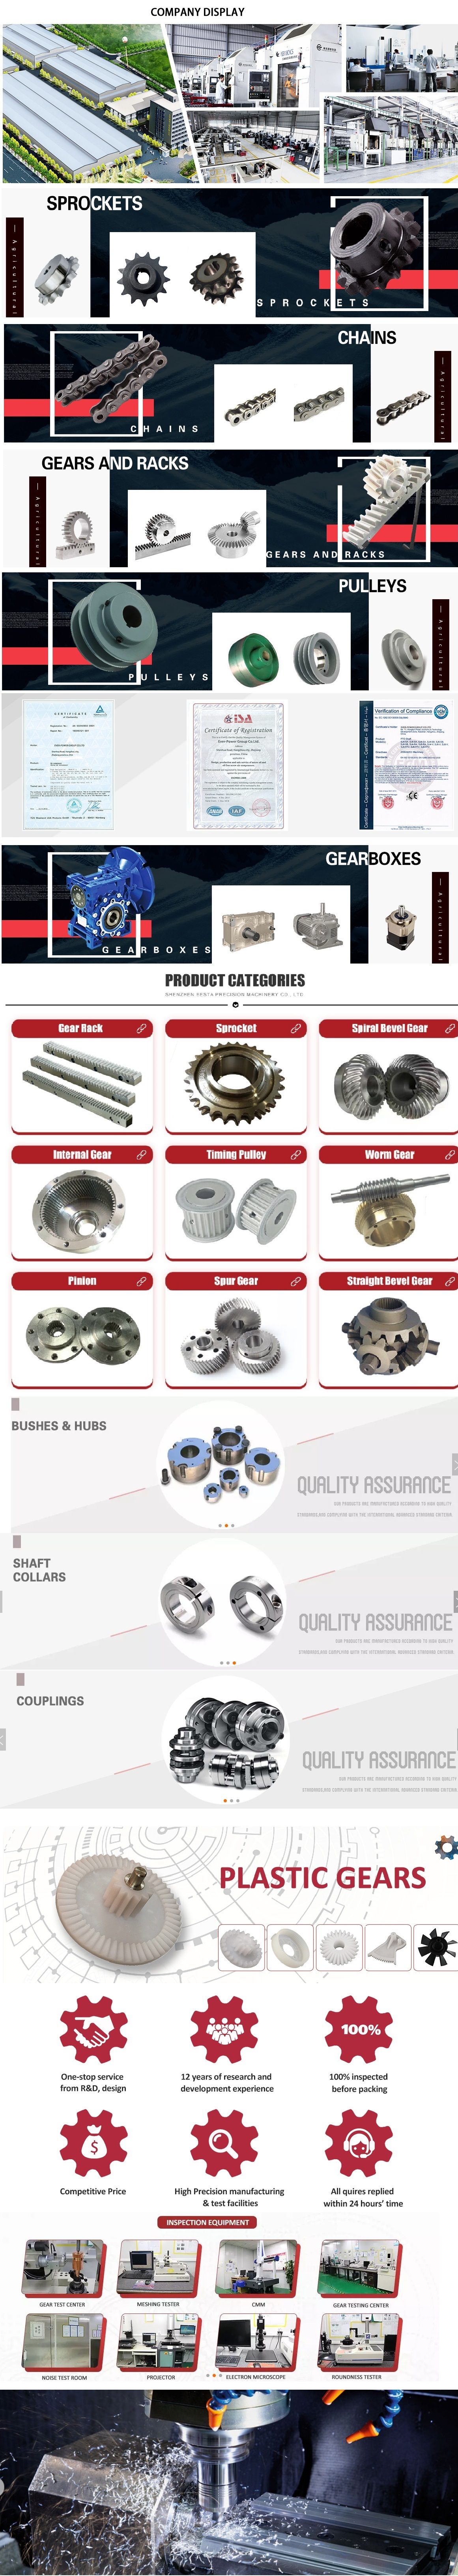 in Jalgaon India  sales   price   shop   near me   near me shop   factory   supplier OEM Customized High Quality Motorcycle Transmission Parts Wheel Gear Motorcycle Parts Oil Pump Gear for Bajaj Pulsar 200ns manufacturer   best   Cost   Custom   Cheap   wholesaler